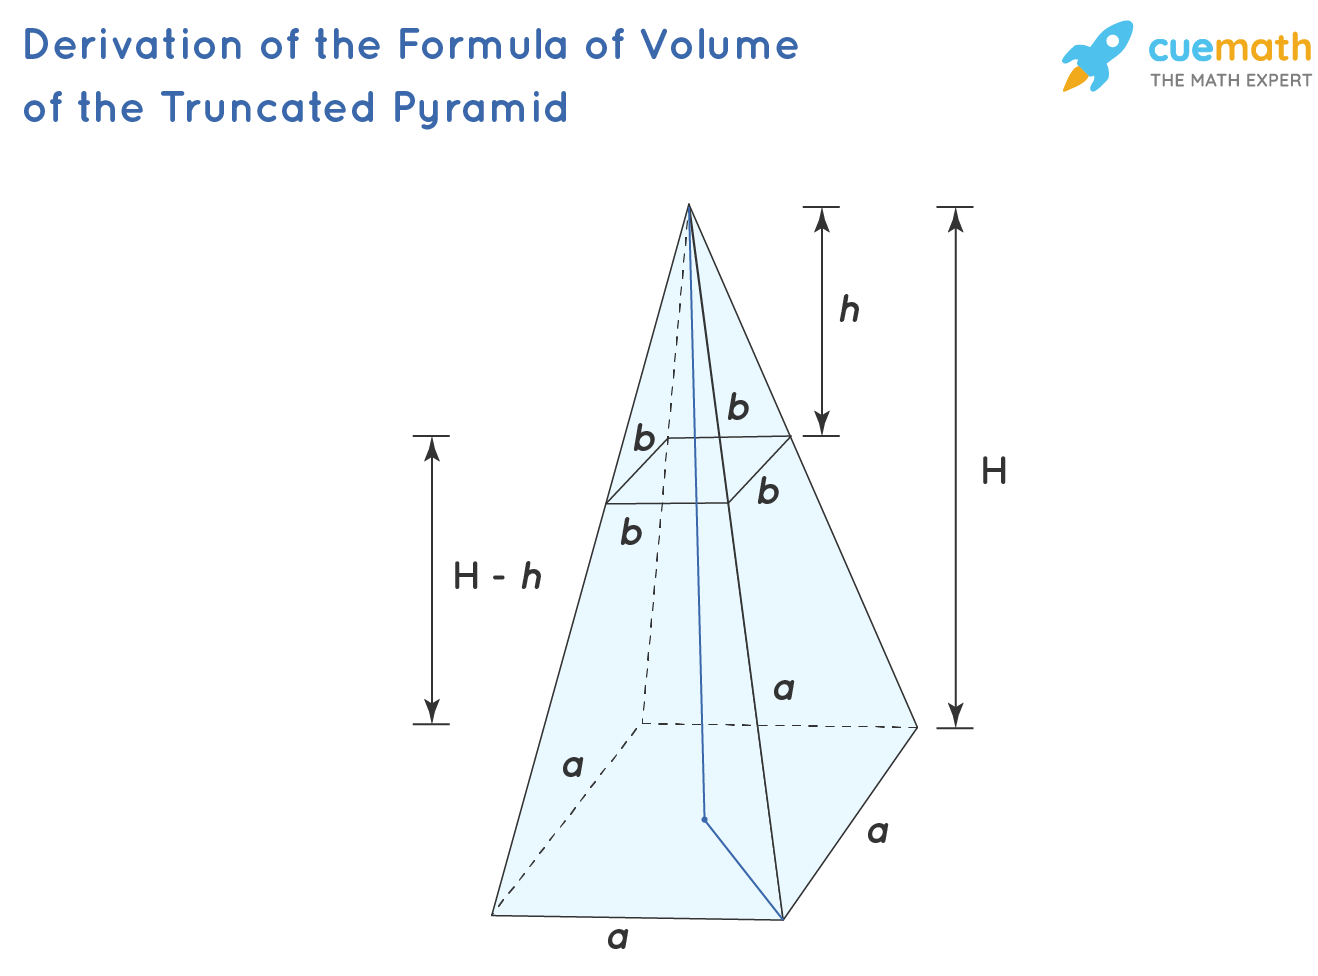 Volume of a Truncated Pyramid - Derivation